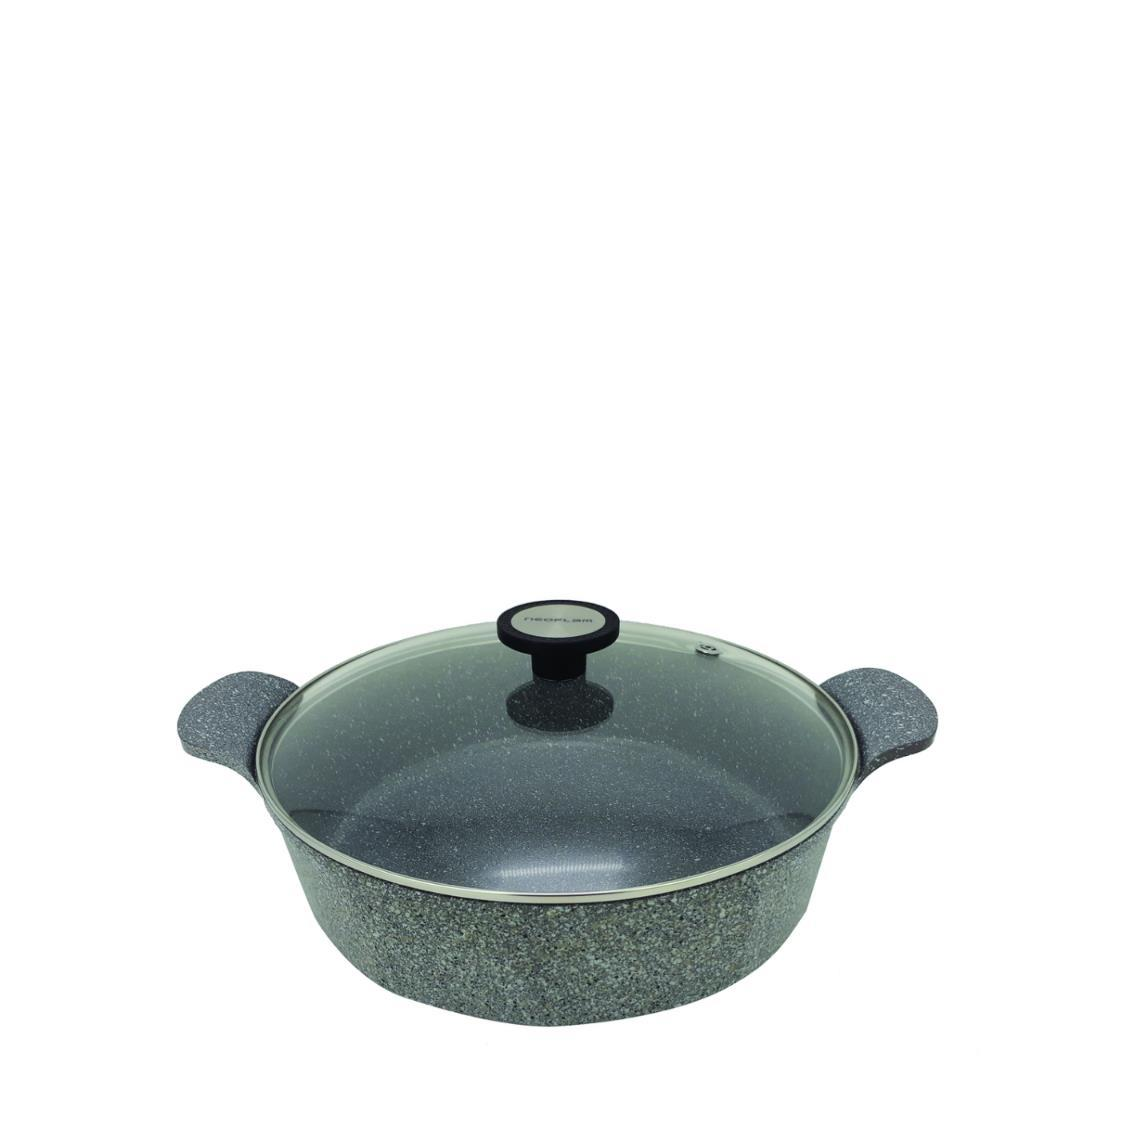 Low Casserole with Silicone Rim Glass lid 32cm